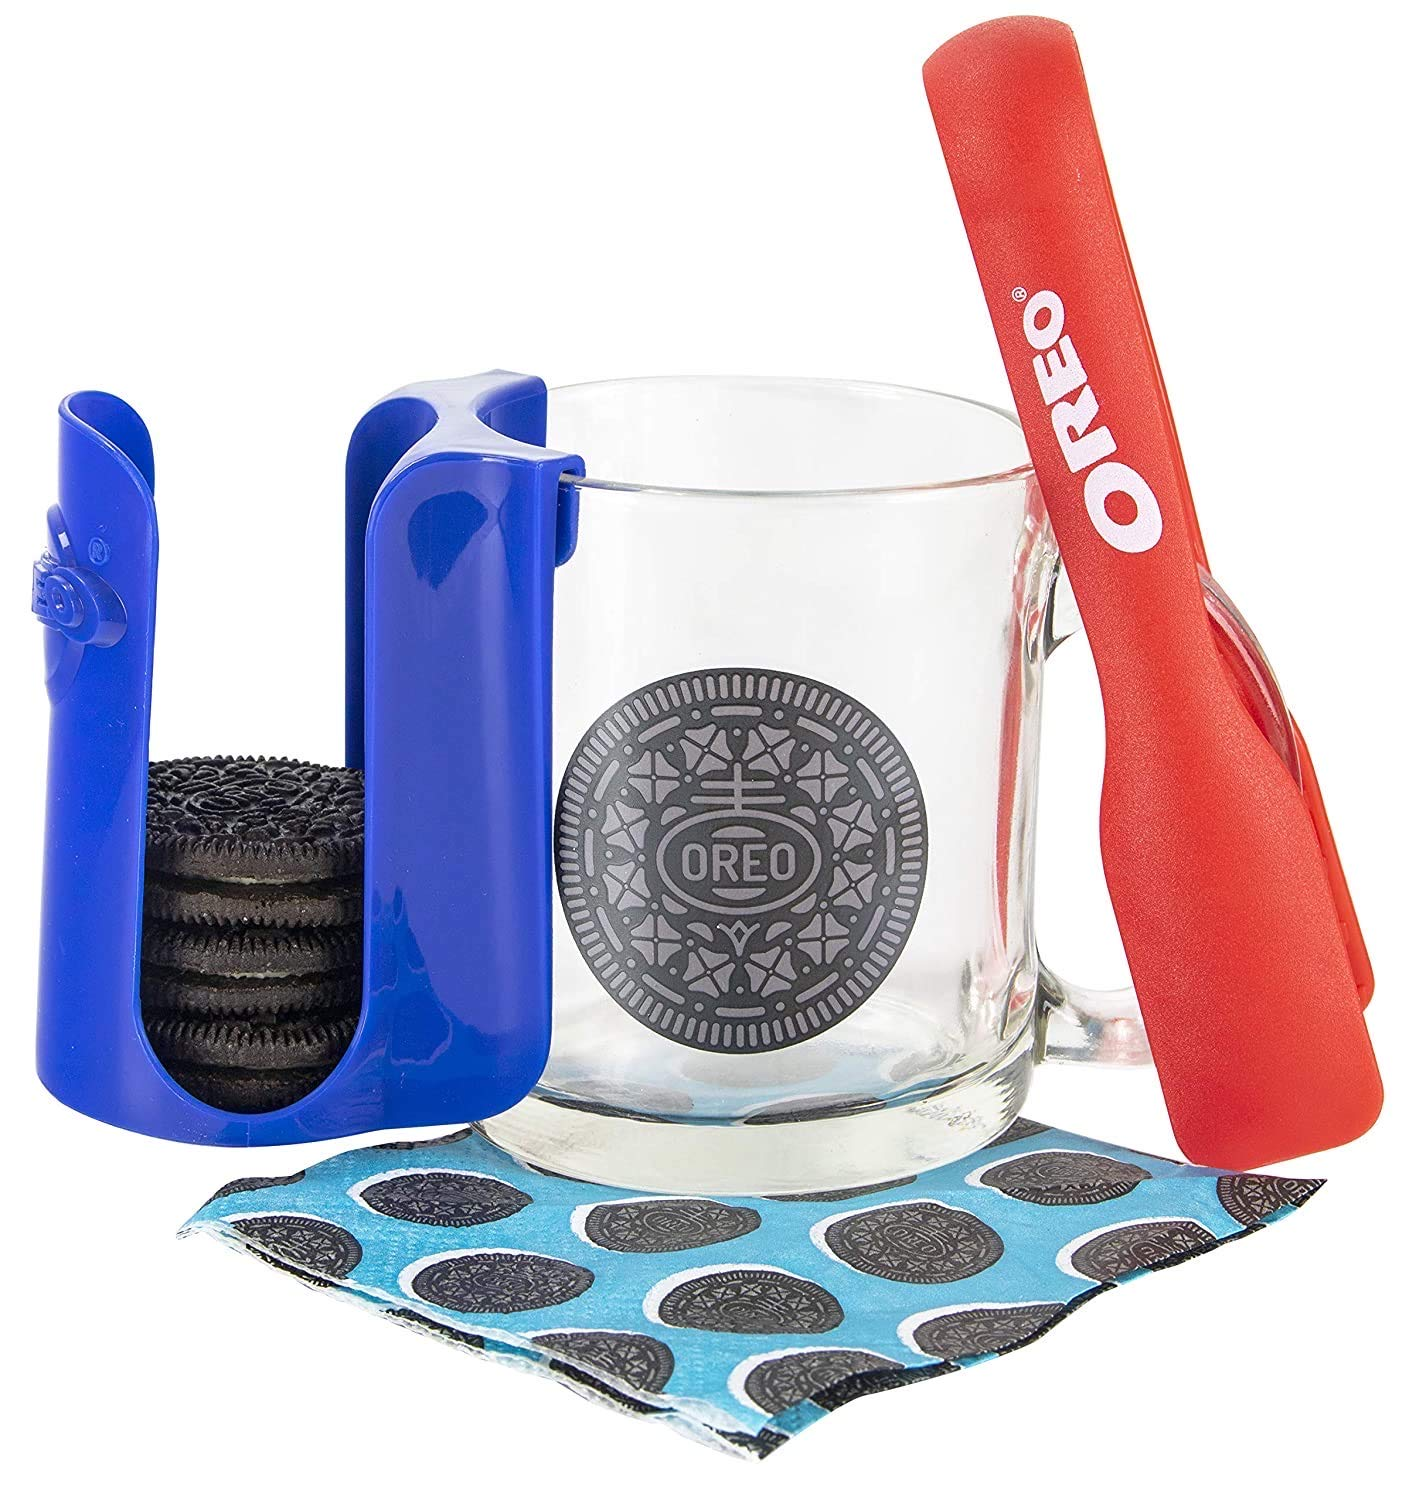 Frankford Candy Company Oreo Dunk Set Single 2 33 Ounce Buy Online In Romania At Desertcart Ro Productid 88706485